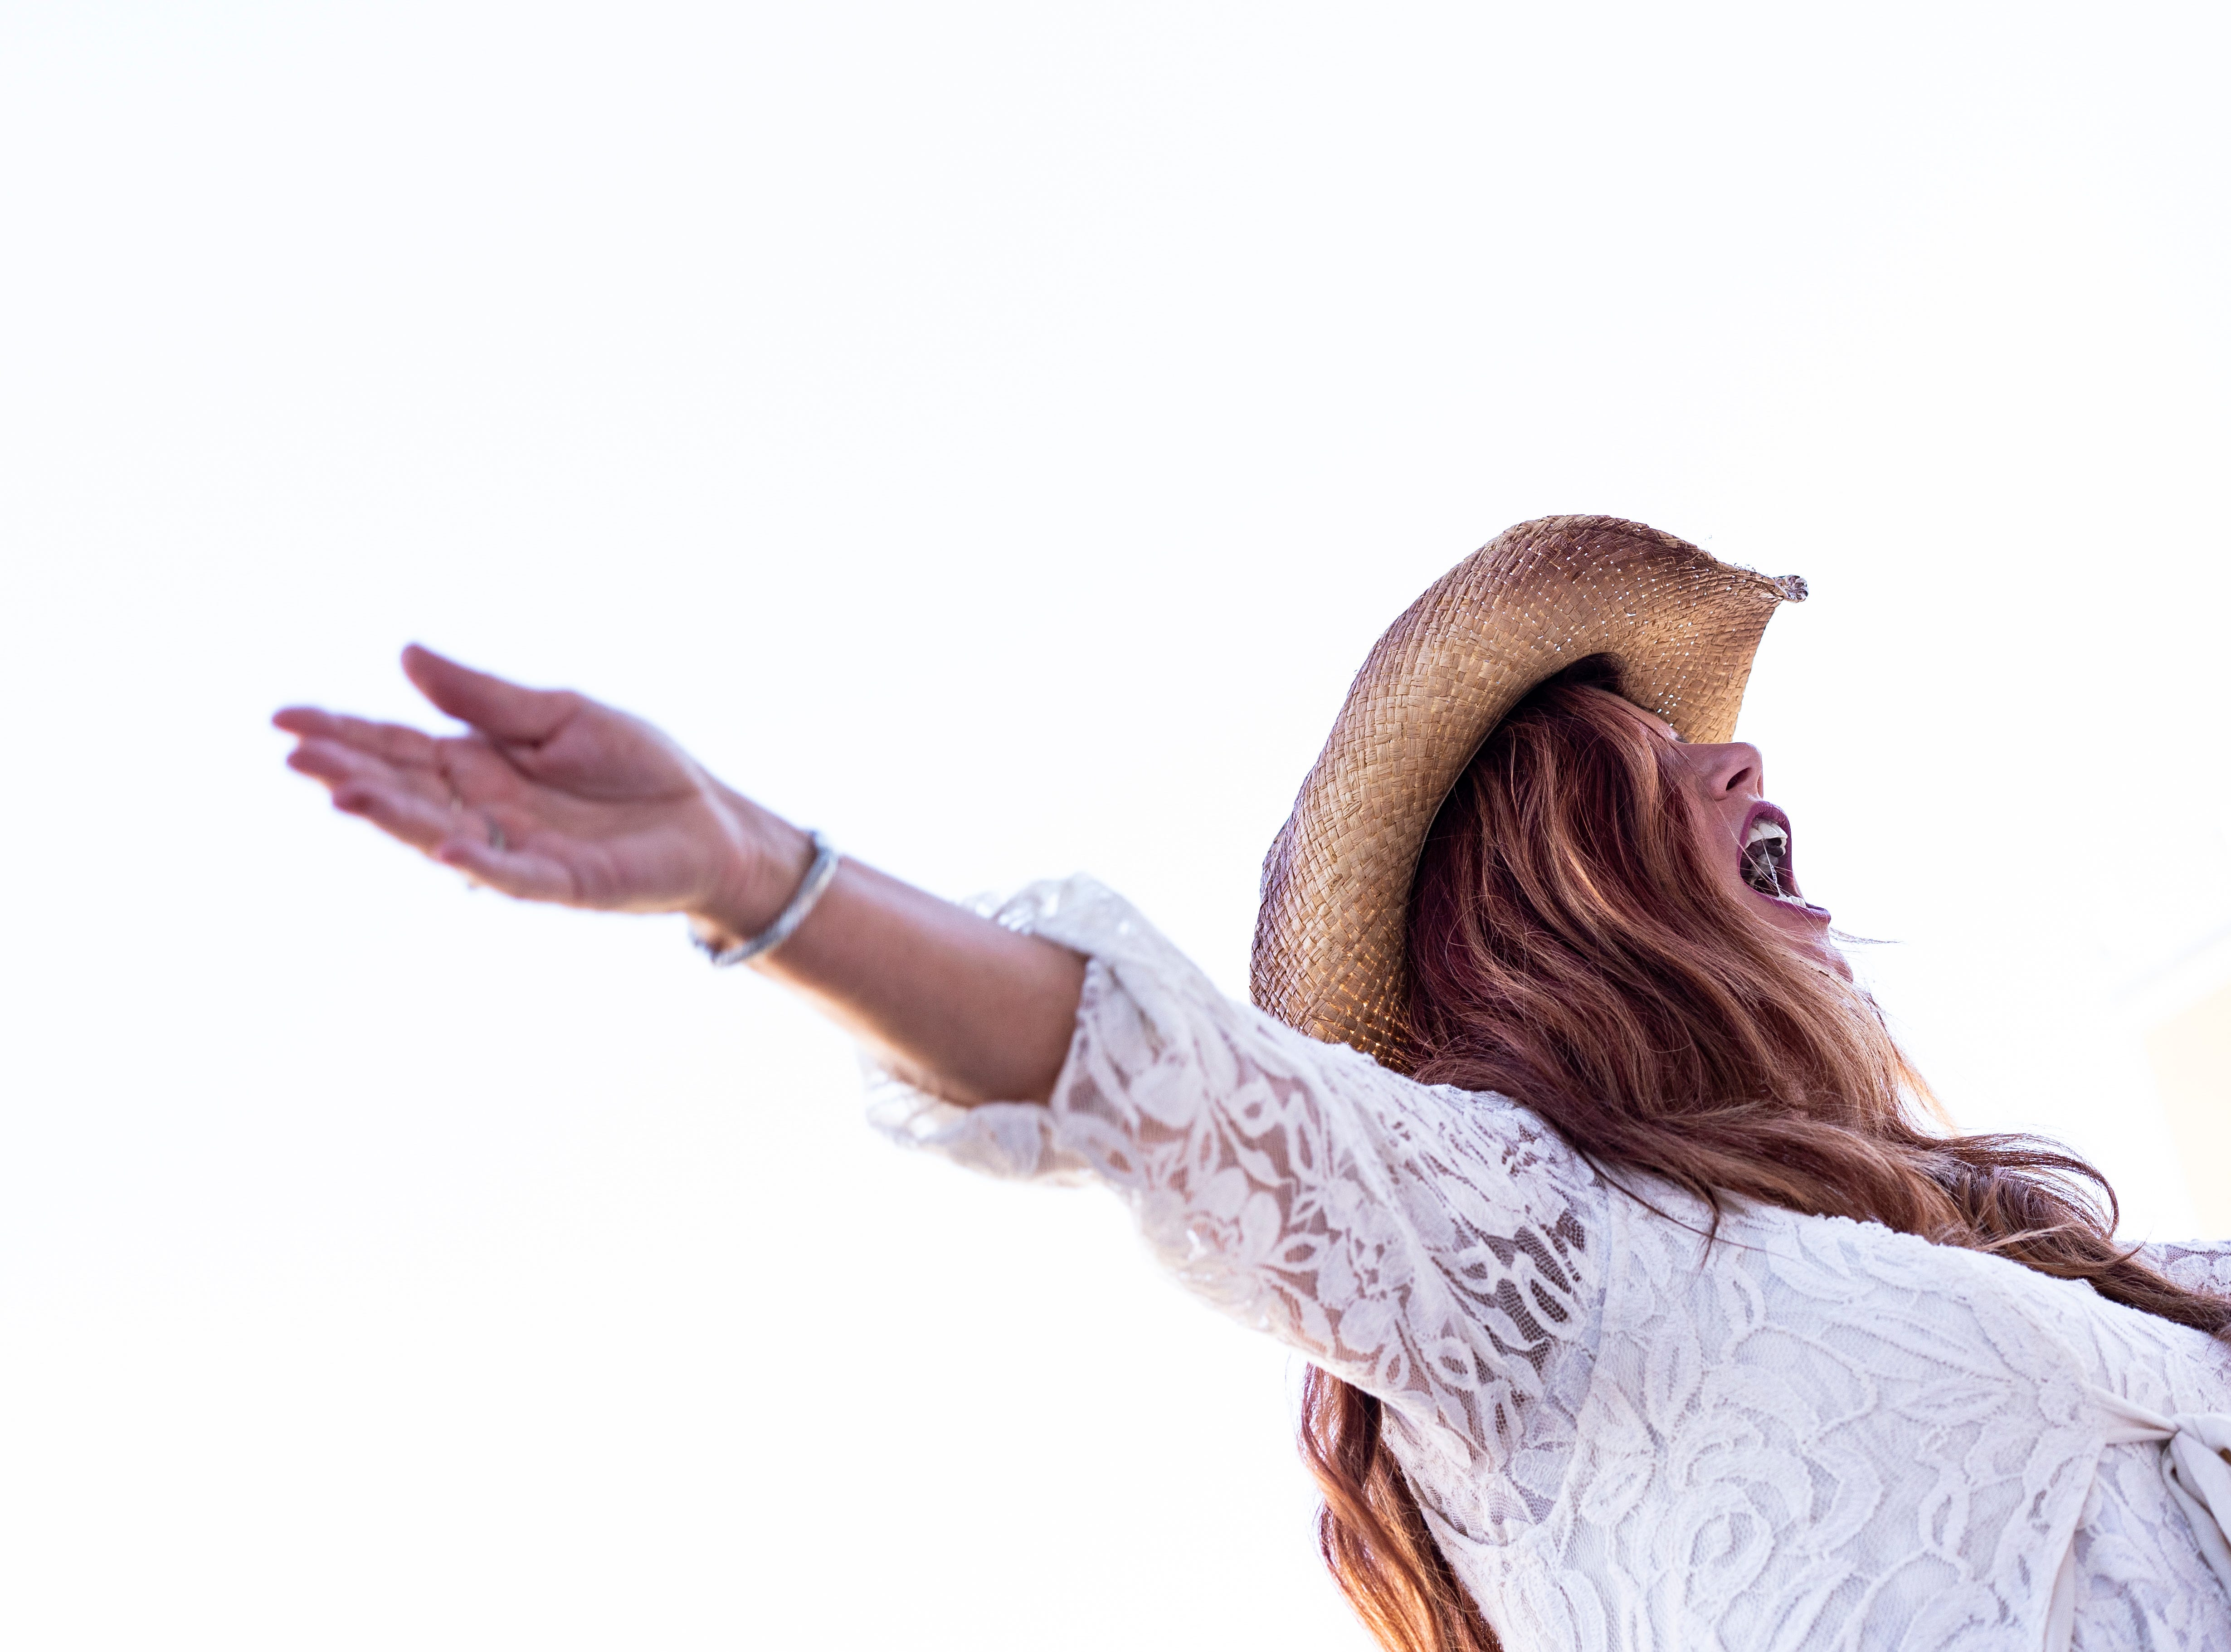 """Valerie Deising, wife of Ben Allen Band bassist Bret Deising, waves her hands in the air while singing along with the band's cover of the song """"Spingsteen"""" by Eric Church at the 63rd annual Farm City BBQ, at theSeminole Casino Hotel on Wednesday, Nov. 21, 2018."""